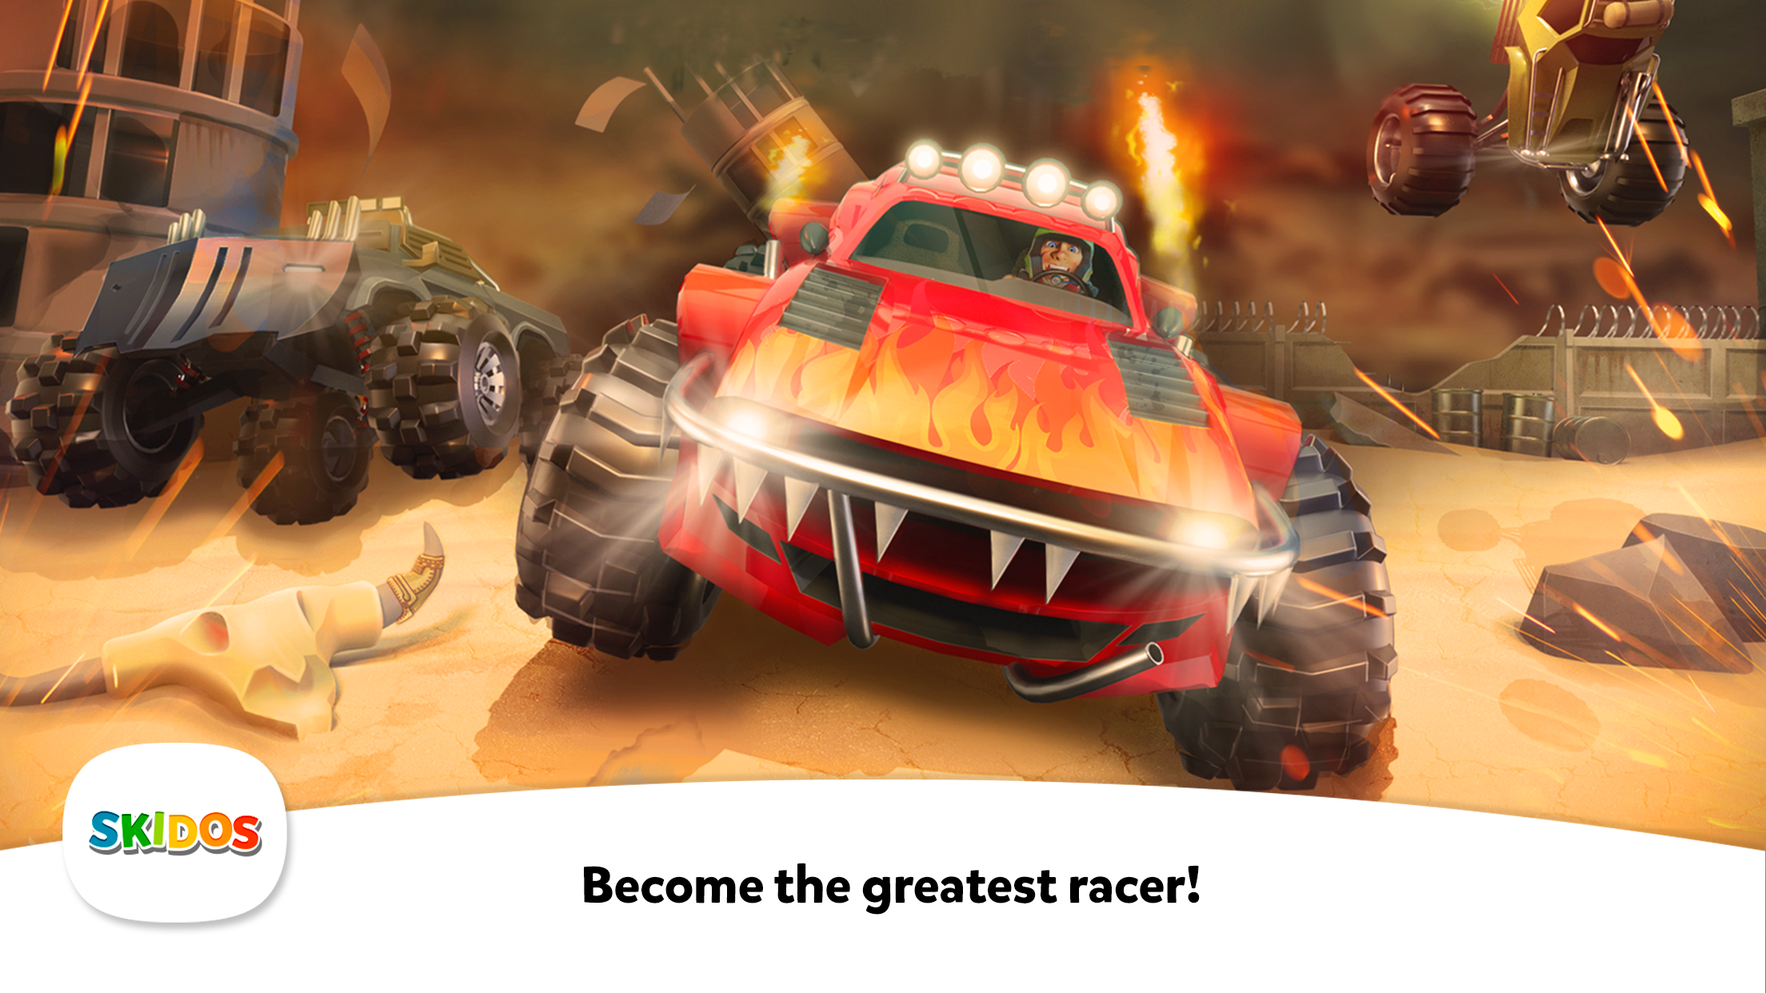 Cool Cars Games >> Car Racing Games Race Cars Play With Monster Trucks At